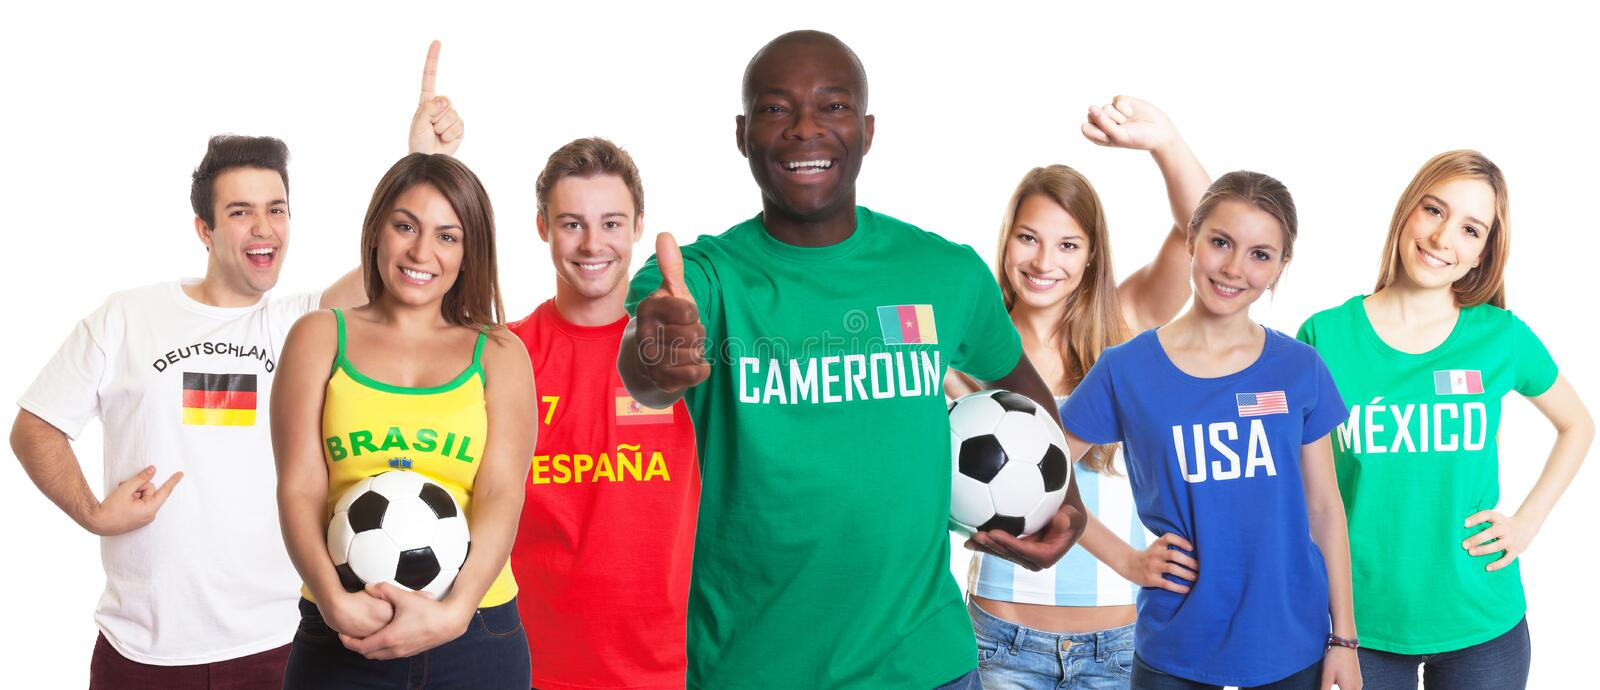 Download Football Fan From Cameroon Showing Thumb With Ball And Other Fans Stock Photo - Image of cheering, afro: 41231514